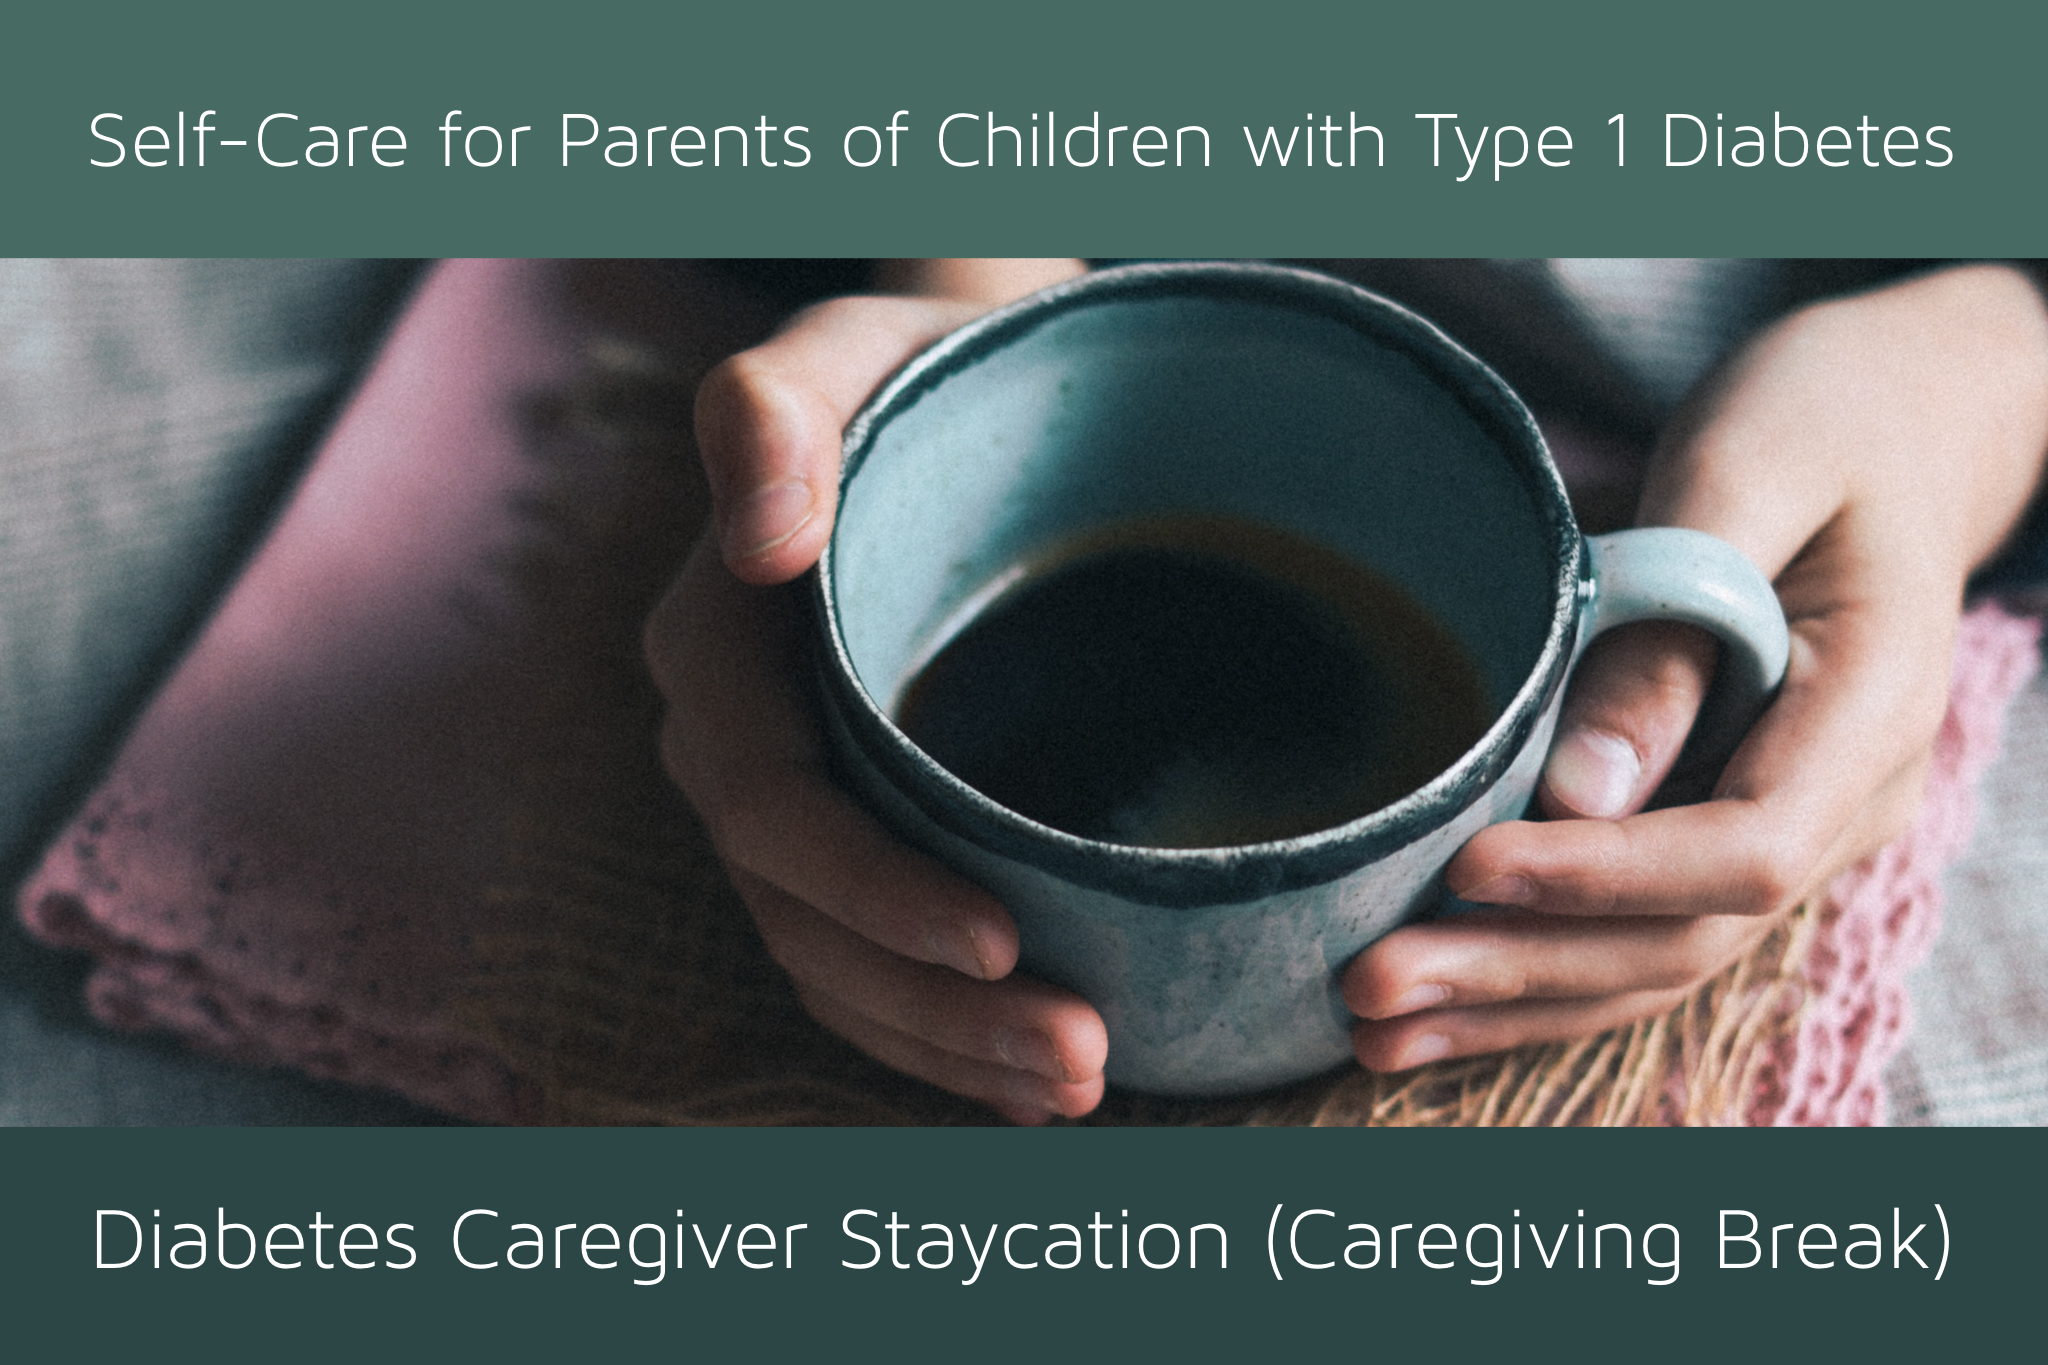 Caregiver Staycation